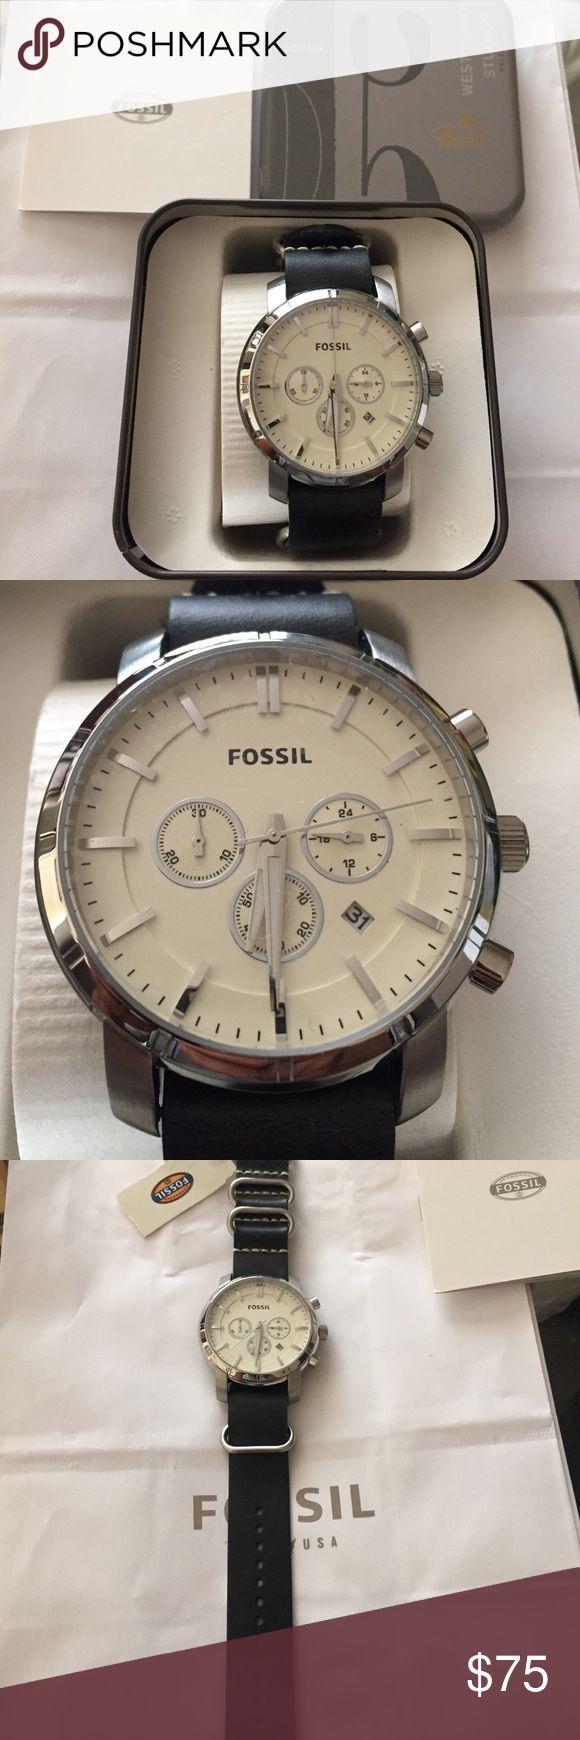 FOSSIL MENS  Watch Brand-new in box fossil men's watch Black bracelet silver and white watch. Fossil Accessories Watches - sale mens watches, mens gold watches for sale, mens white watches